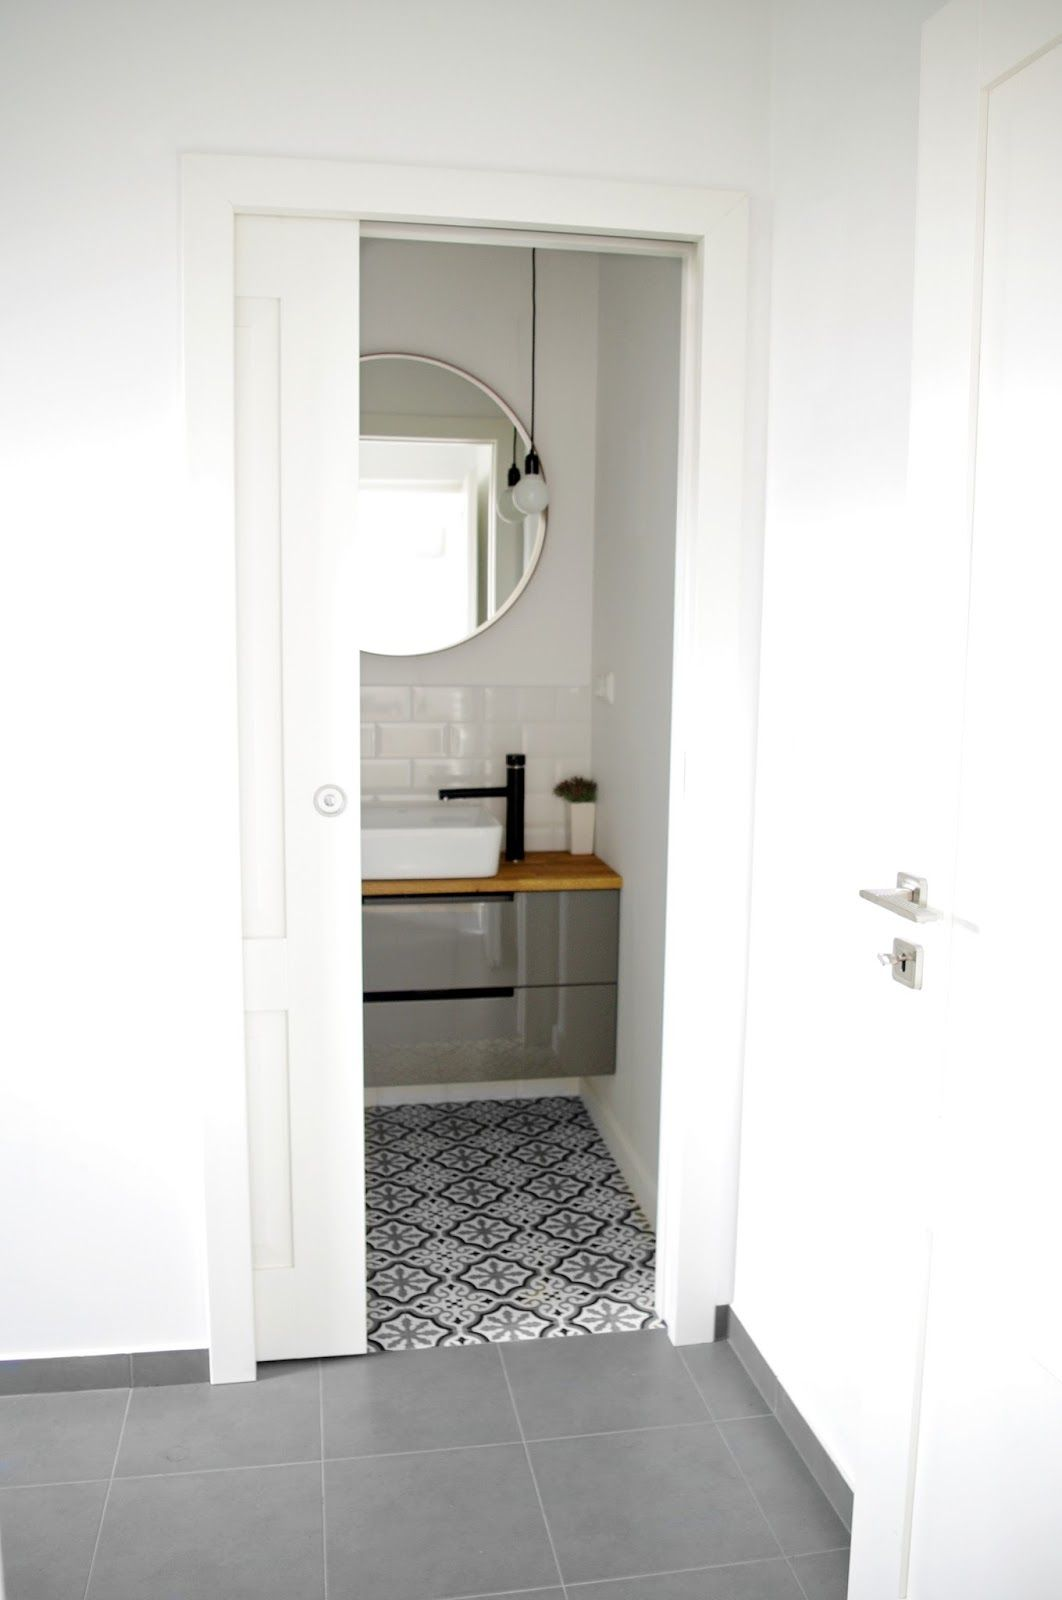 Minimalism moroccan tiles morrocan style bathroom white subway